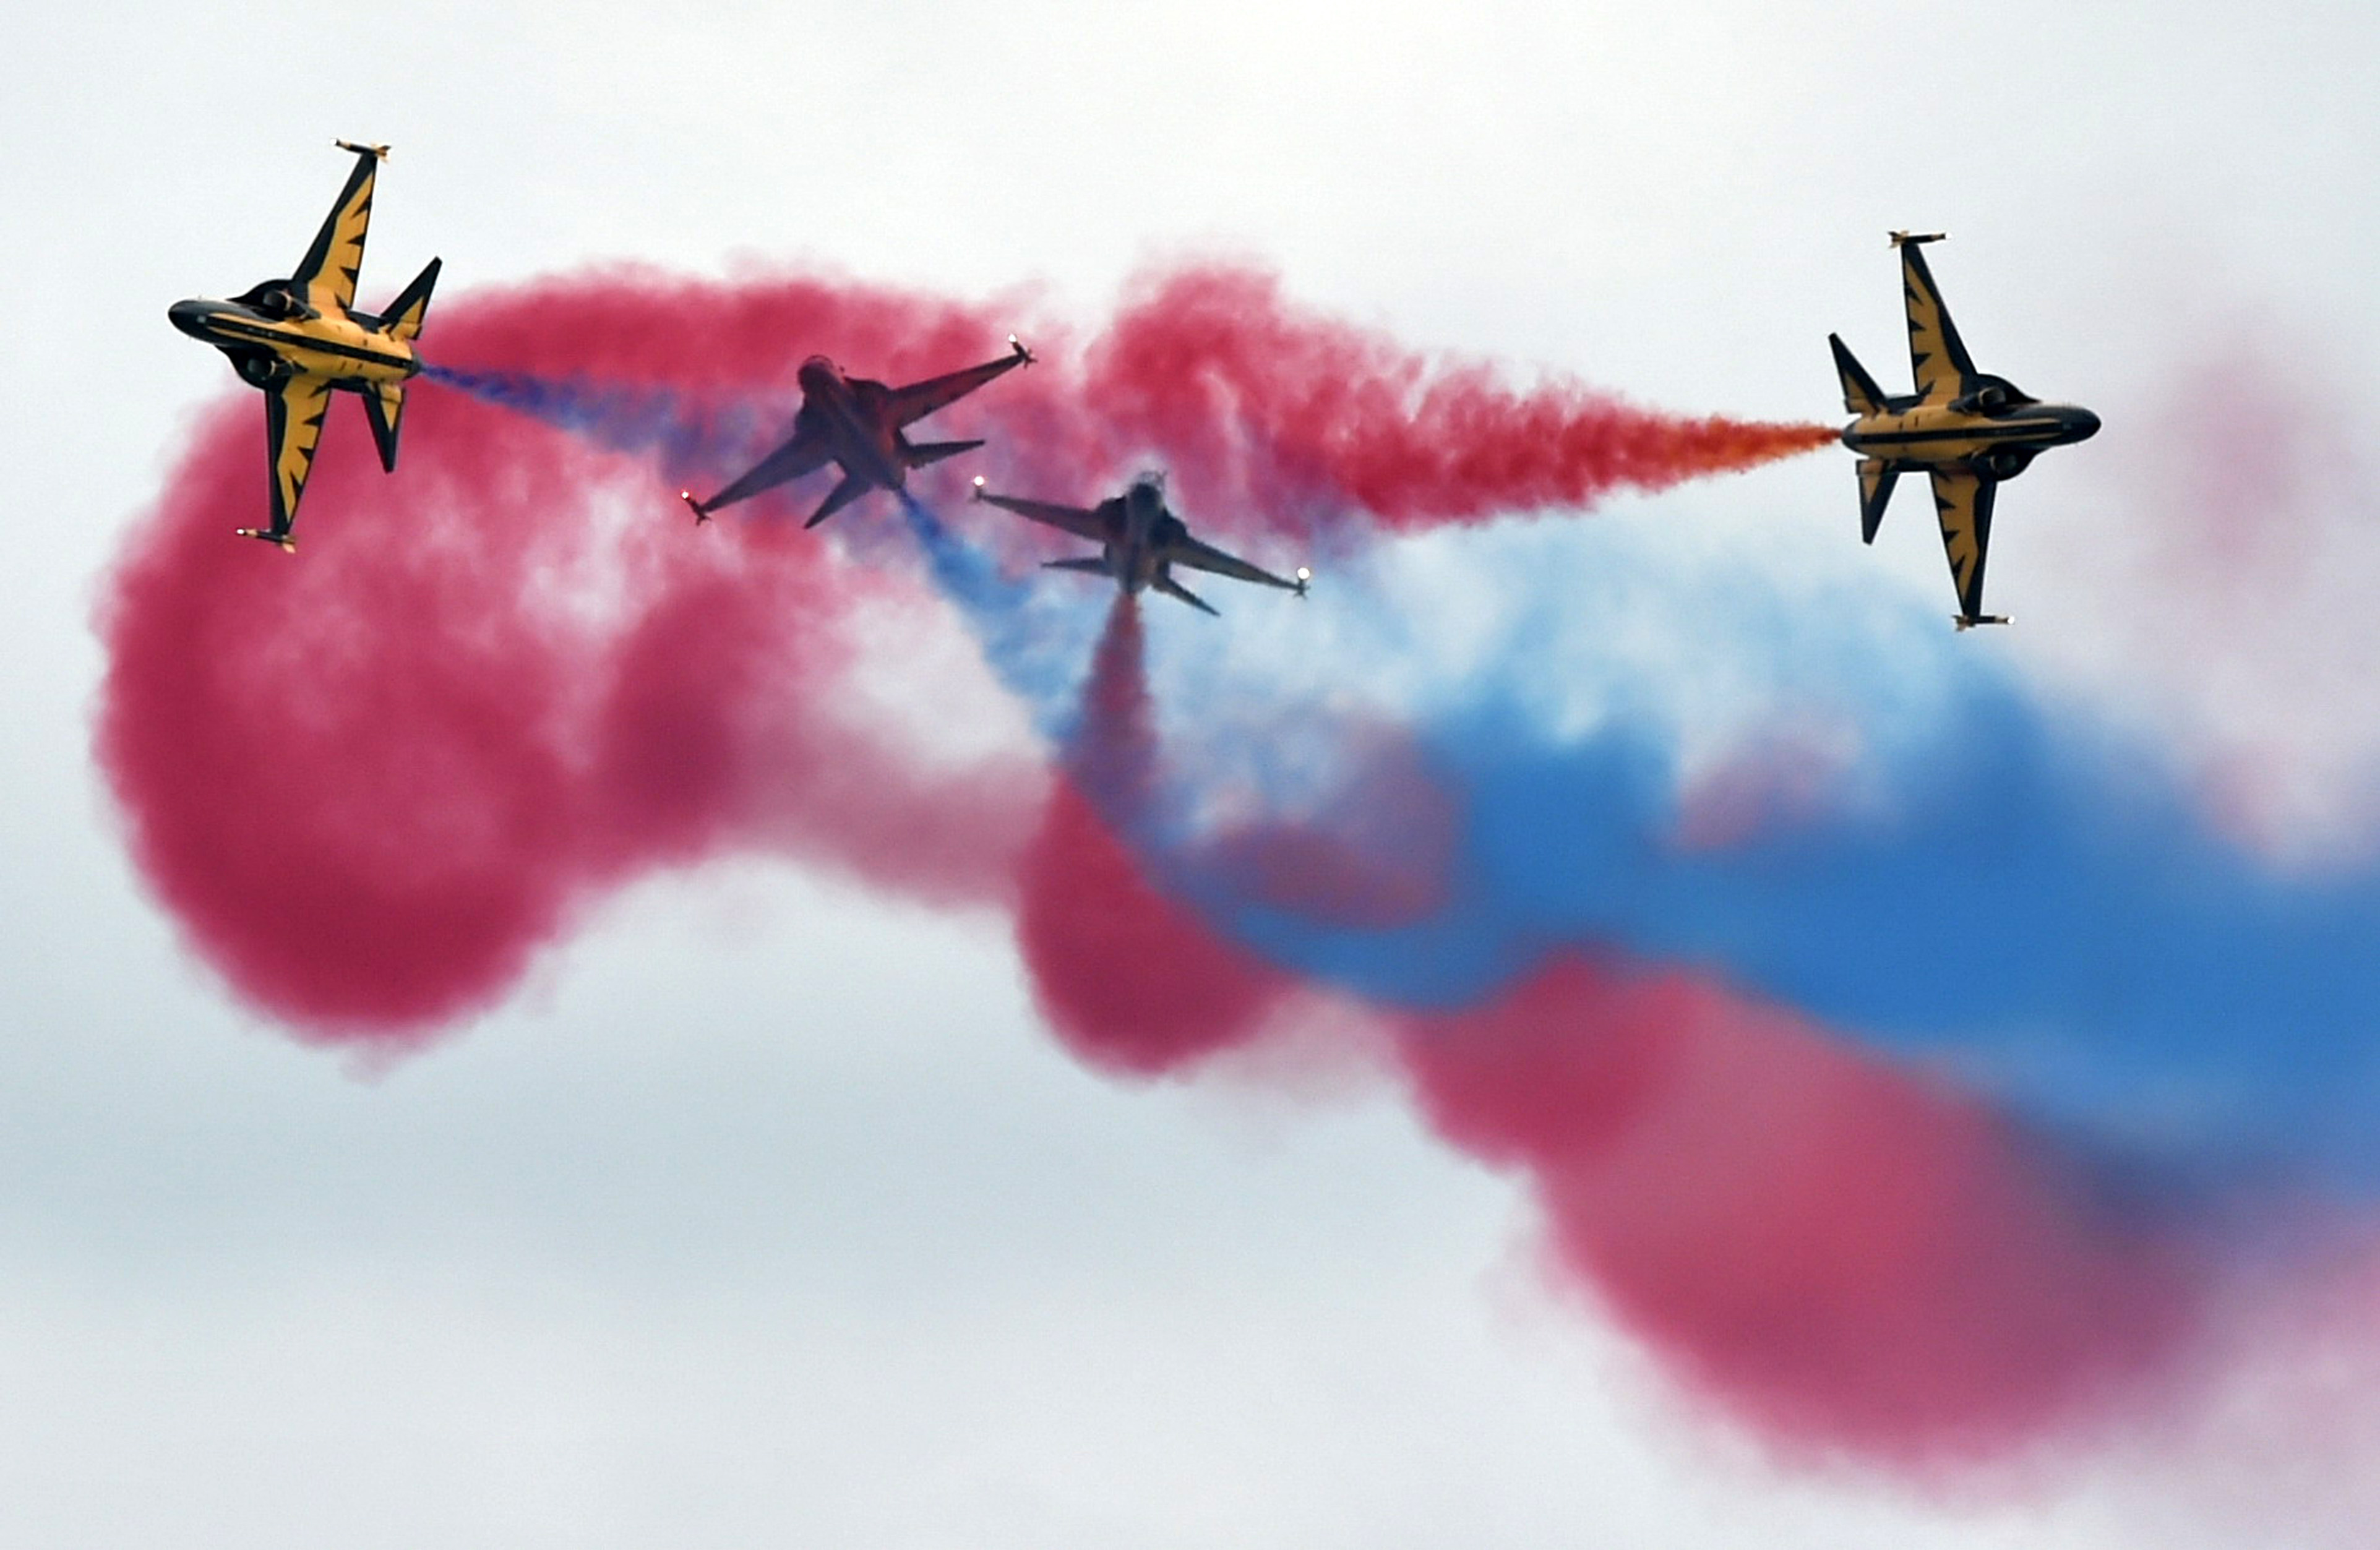 South Korea's Black Eagles aerobatics team performs an aerial display during a preview at the Singapore Airshow in Singapore on Feb.14, 2016.